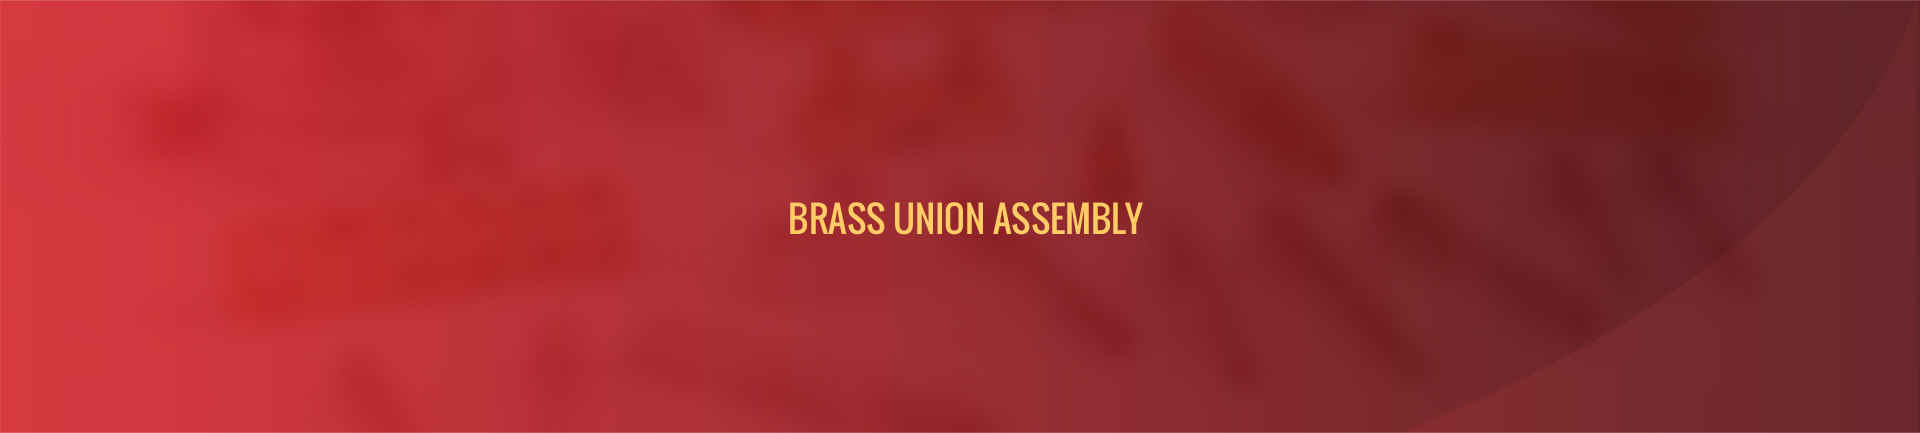 brass_union_assembly-banner